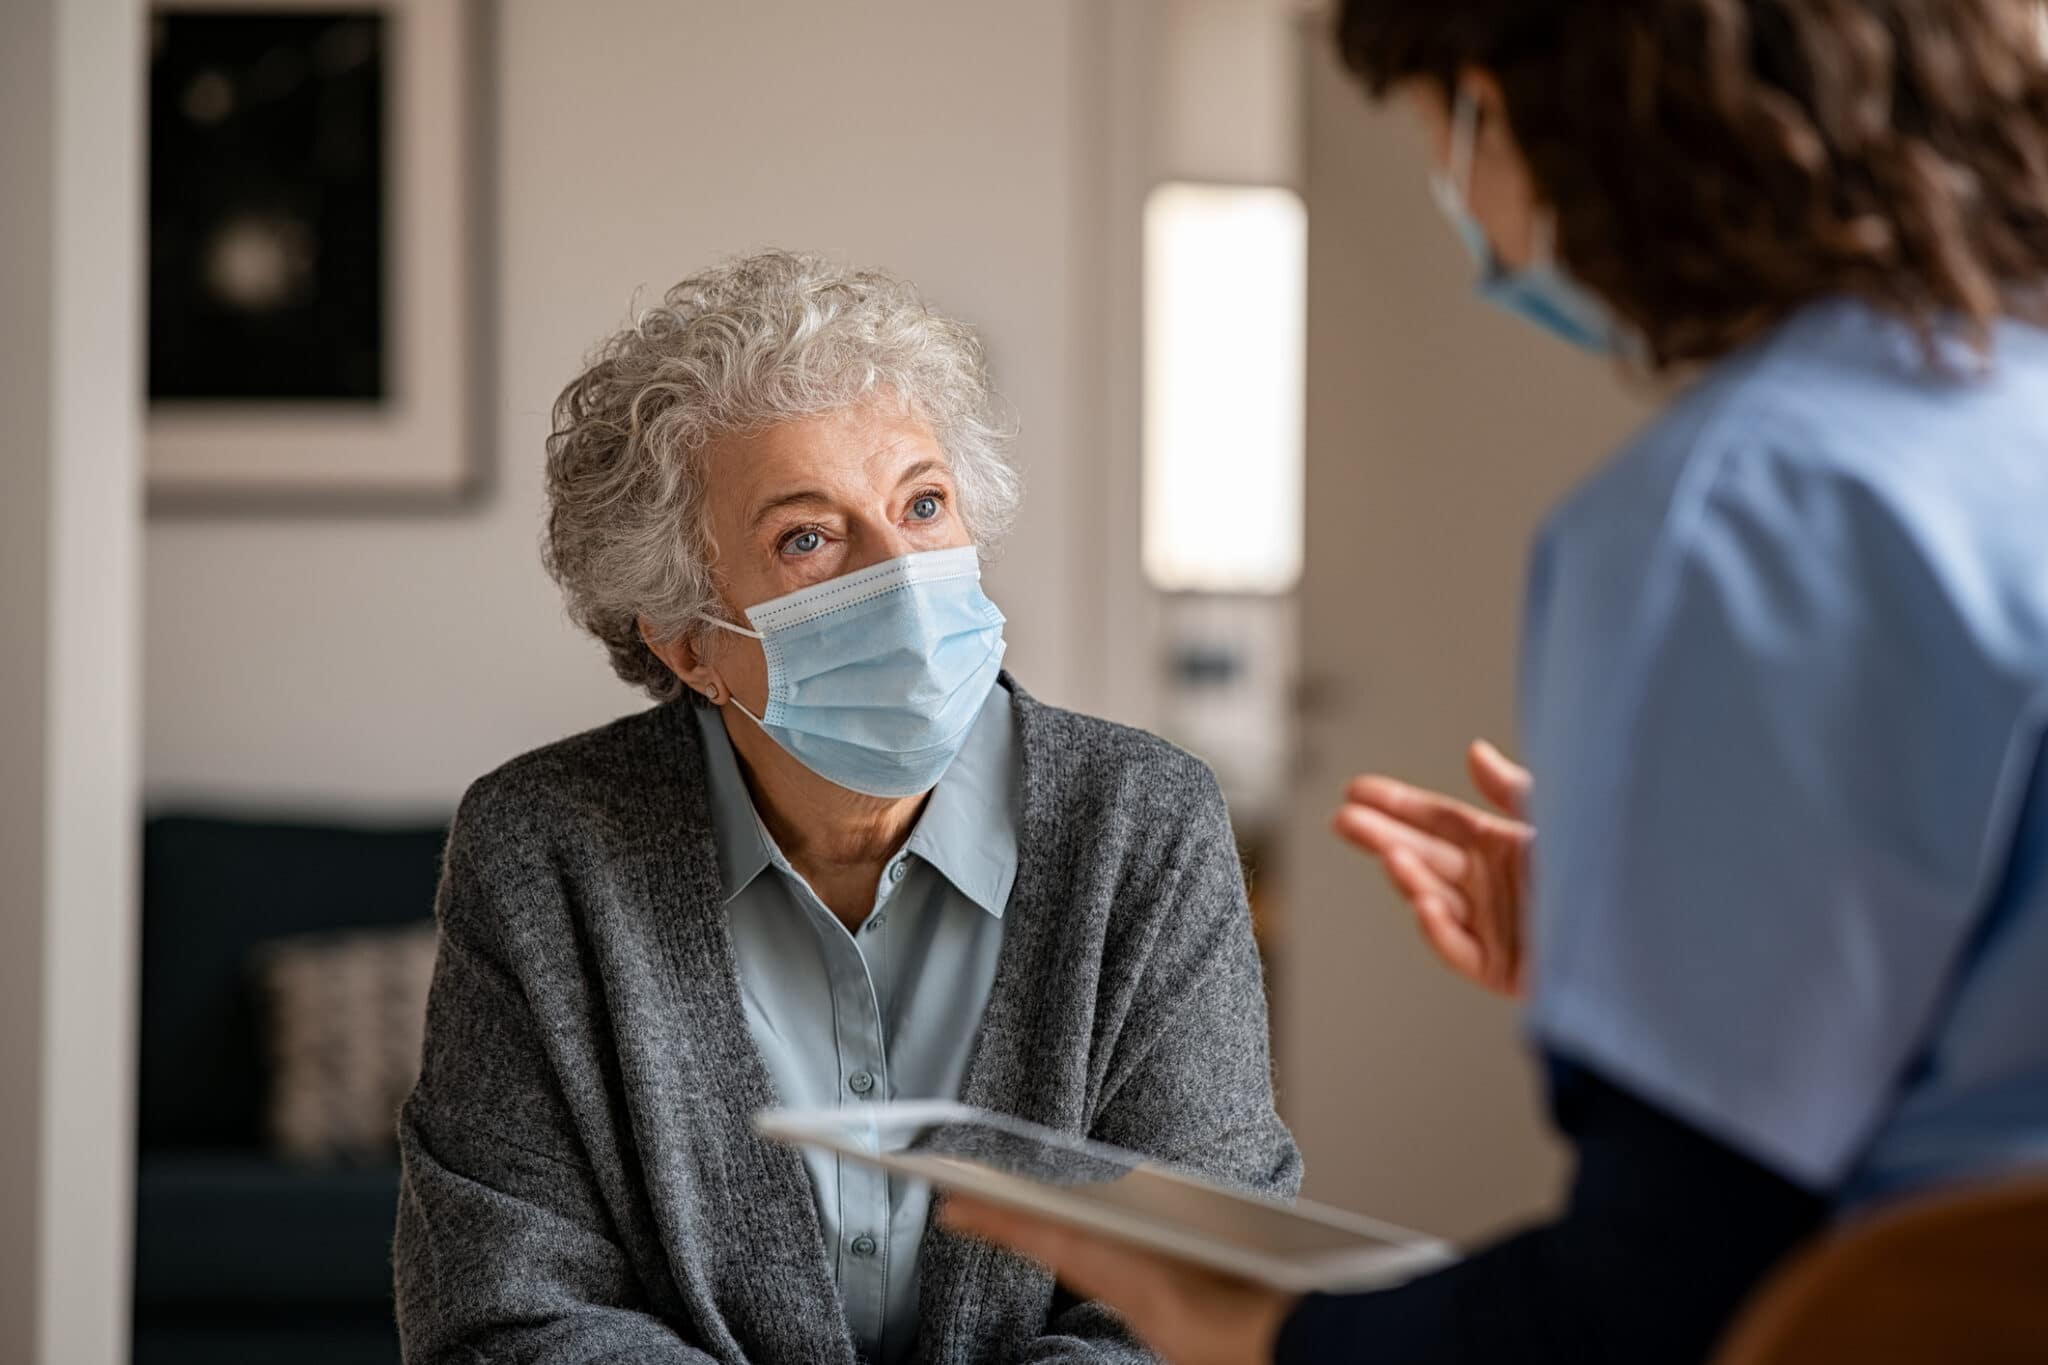 Visiting The Doctor During The Pandemic